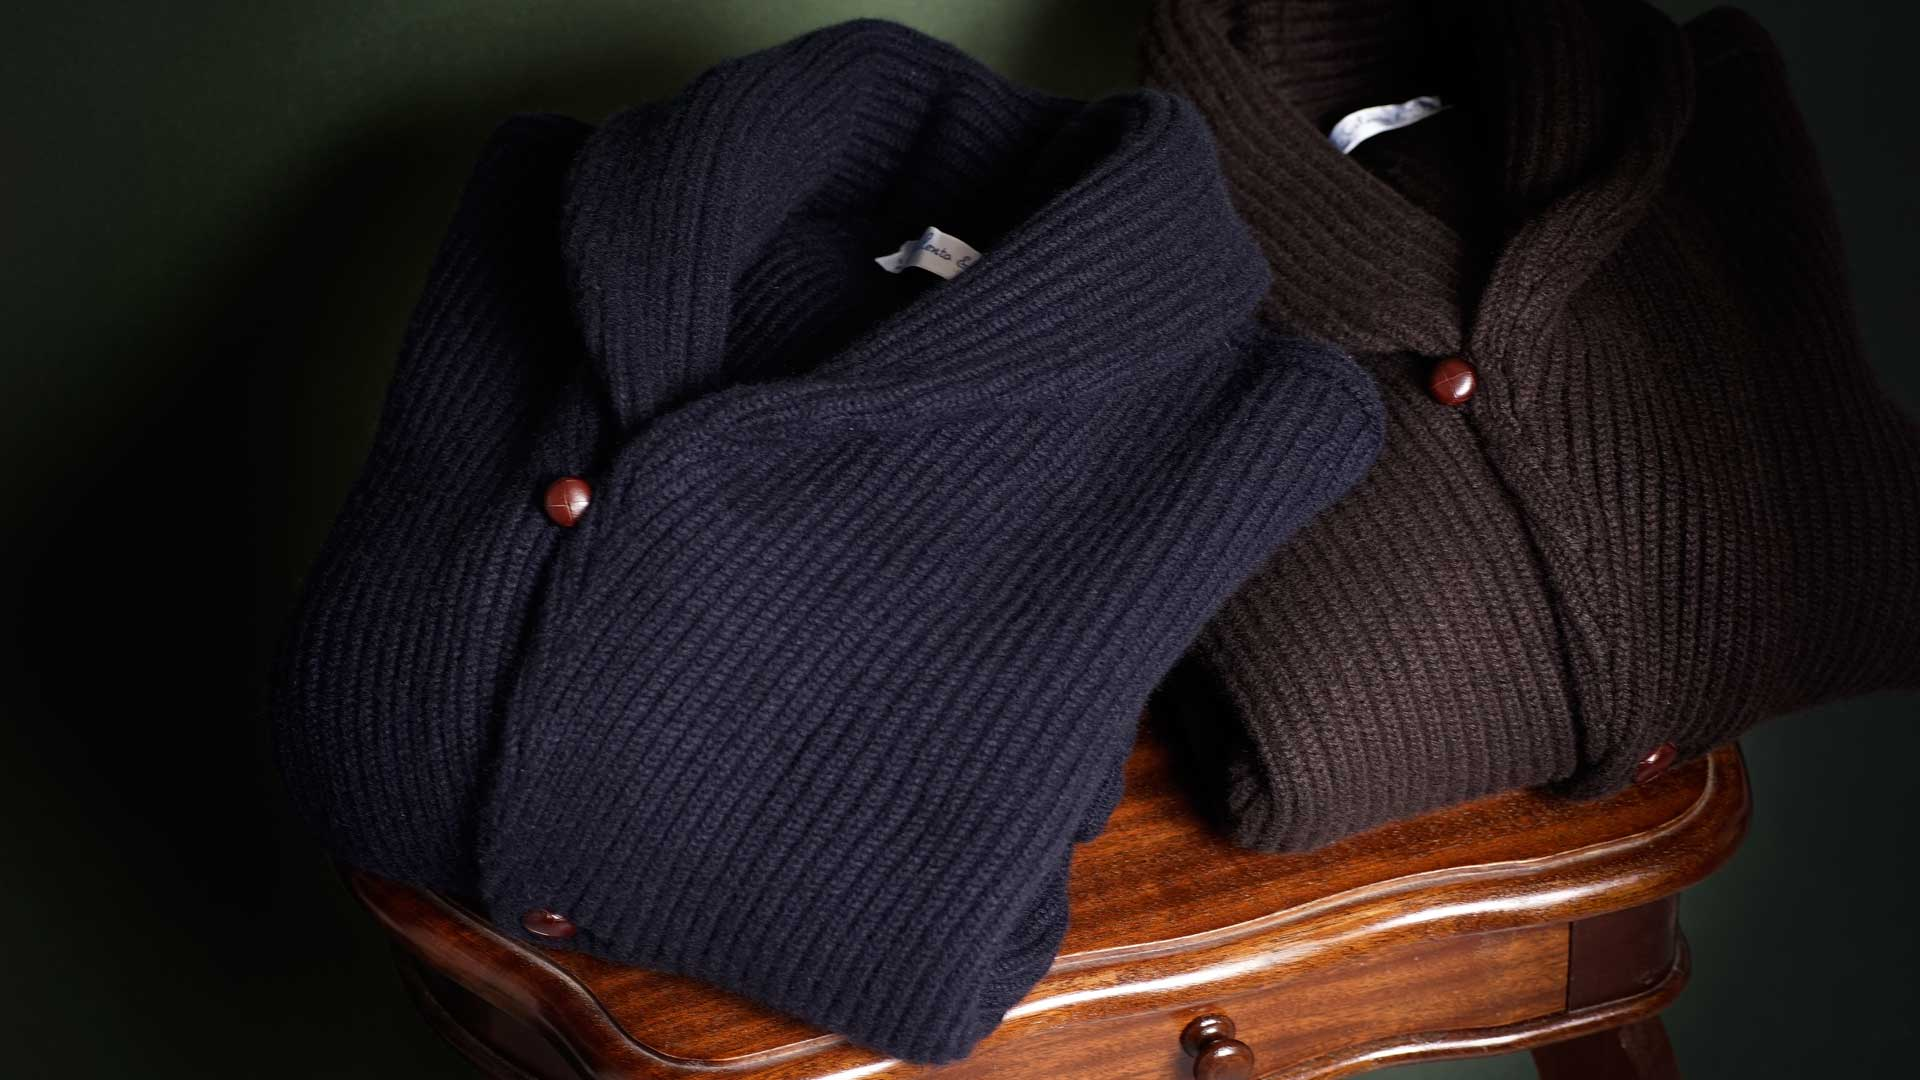 Cilento 1780 - Cardigan in cashmere